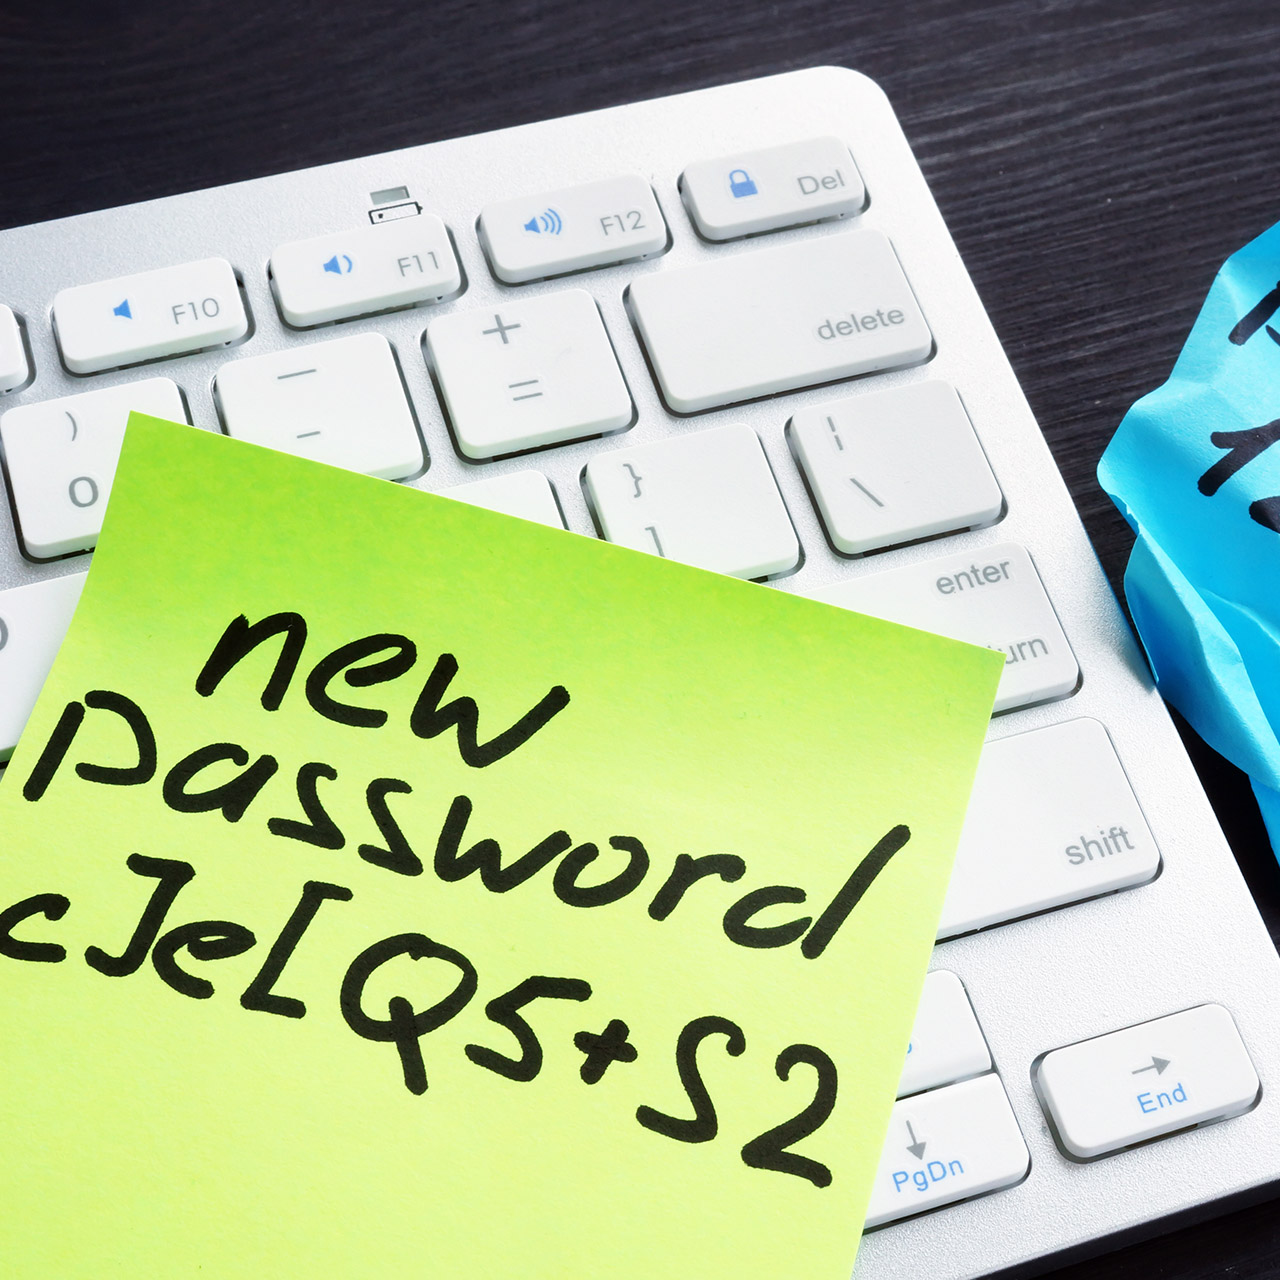 How to protect clear-text passwords